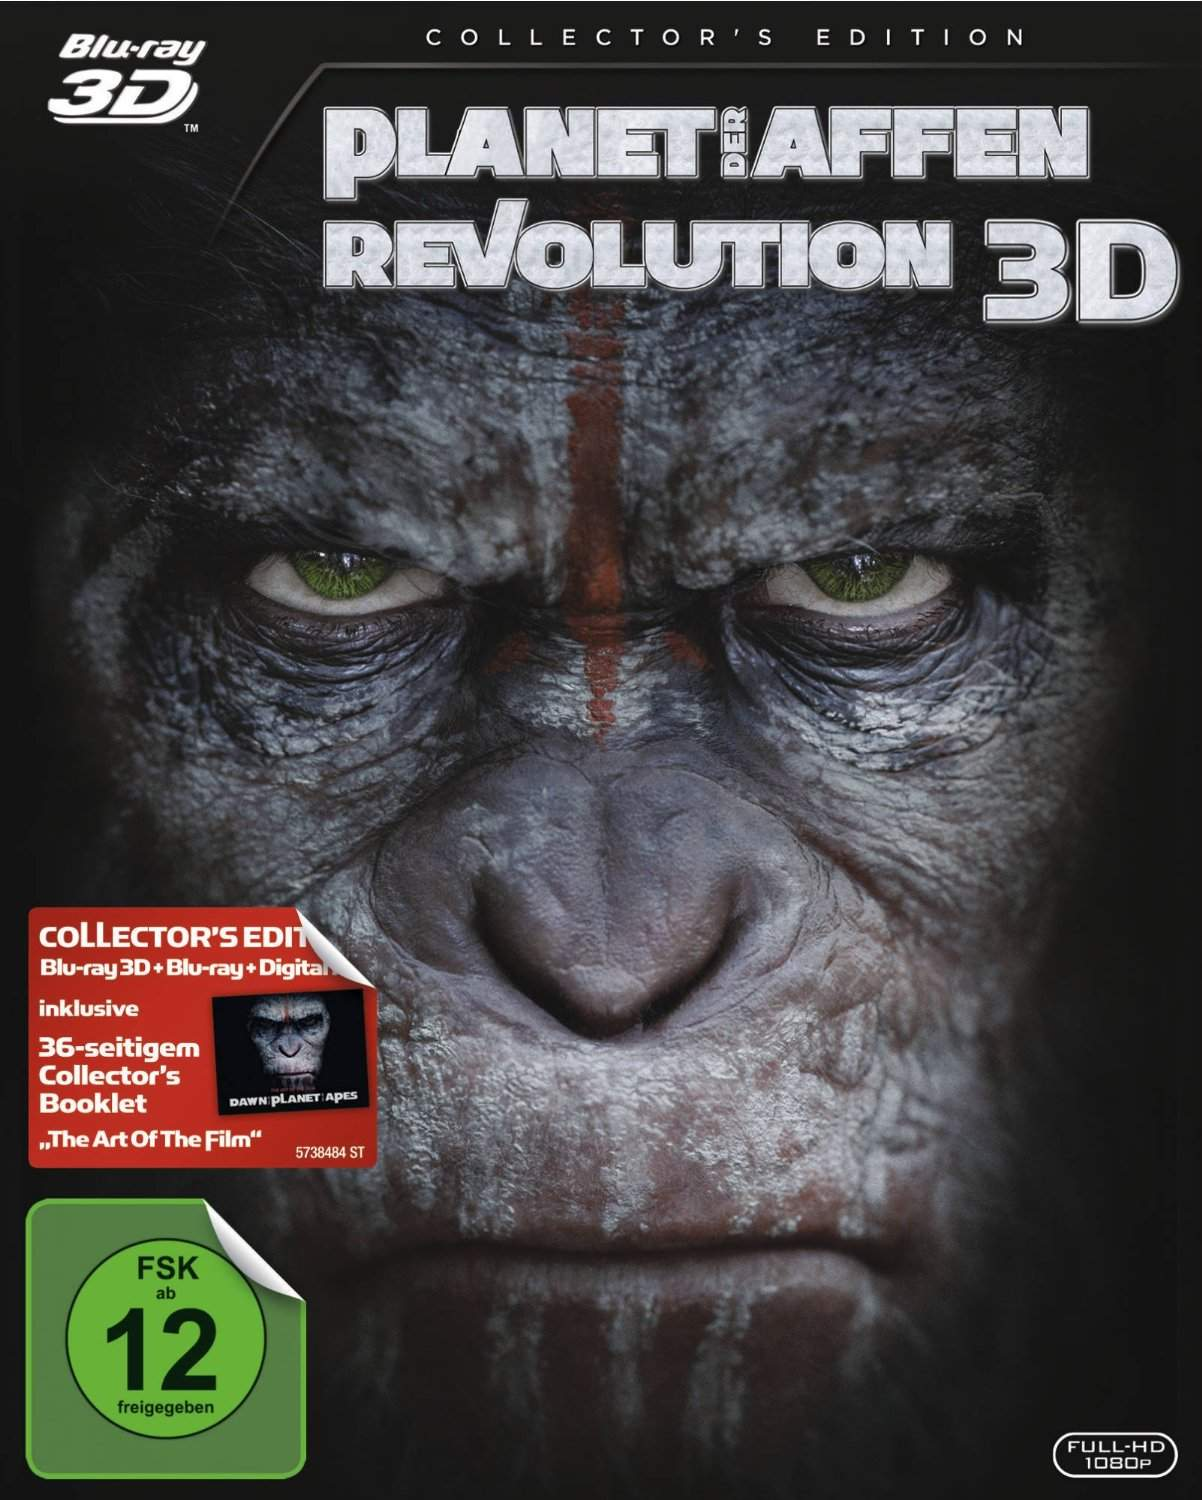 Kkuee4xs in Planet der Affen Revolution 3D HOU German DL 1080p BluRay x264